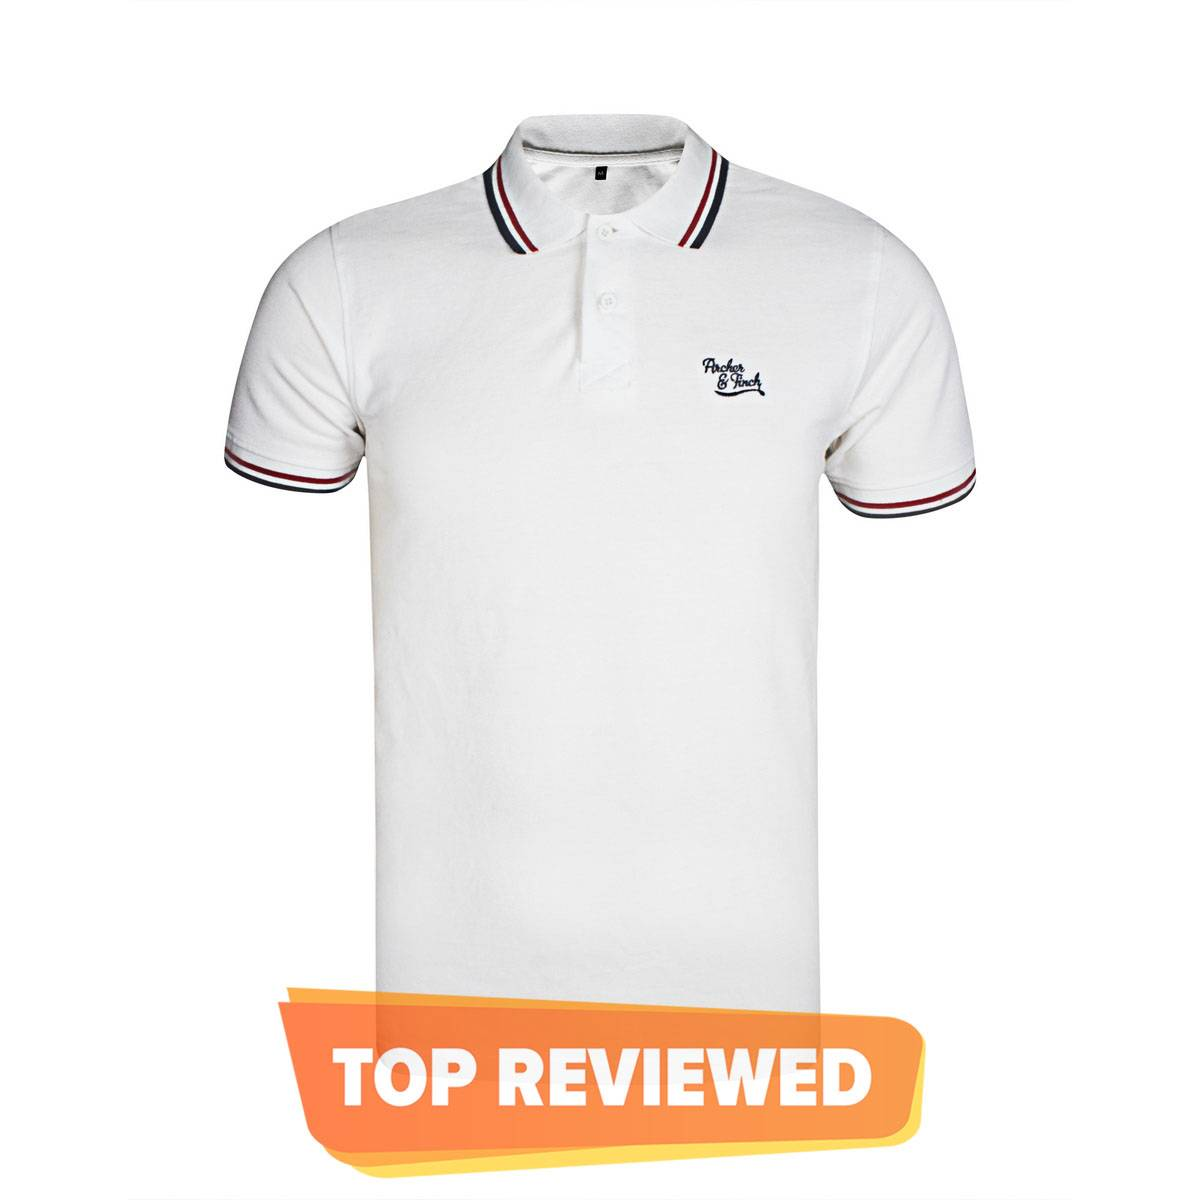 Polo Shirt for Men's High Quality Short sleeve  Polo with Pop Corn and Injection Slub fabric effect give Trendy and Fashion look Regular UK Size fitting